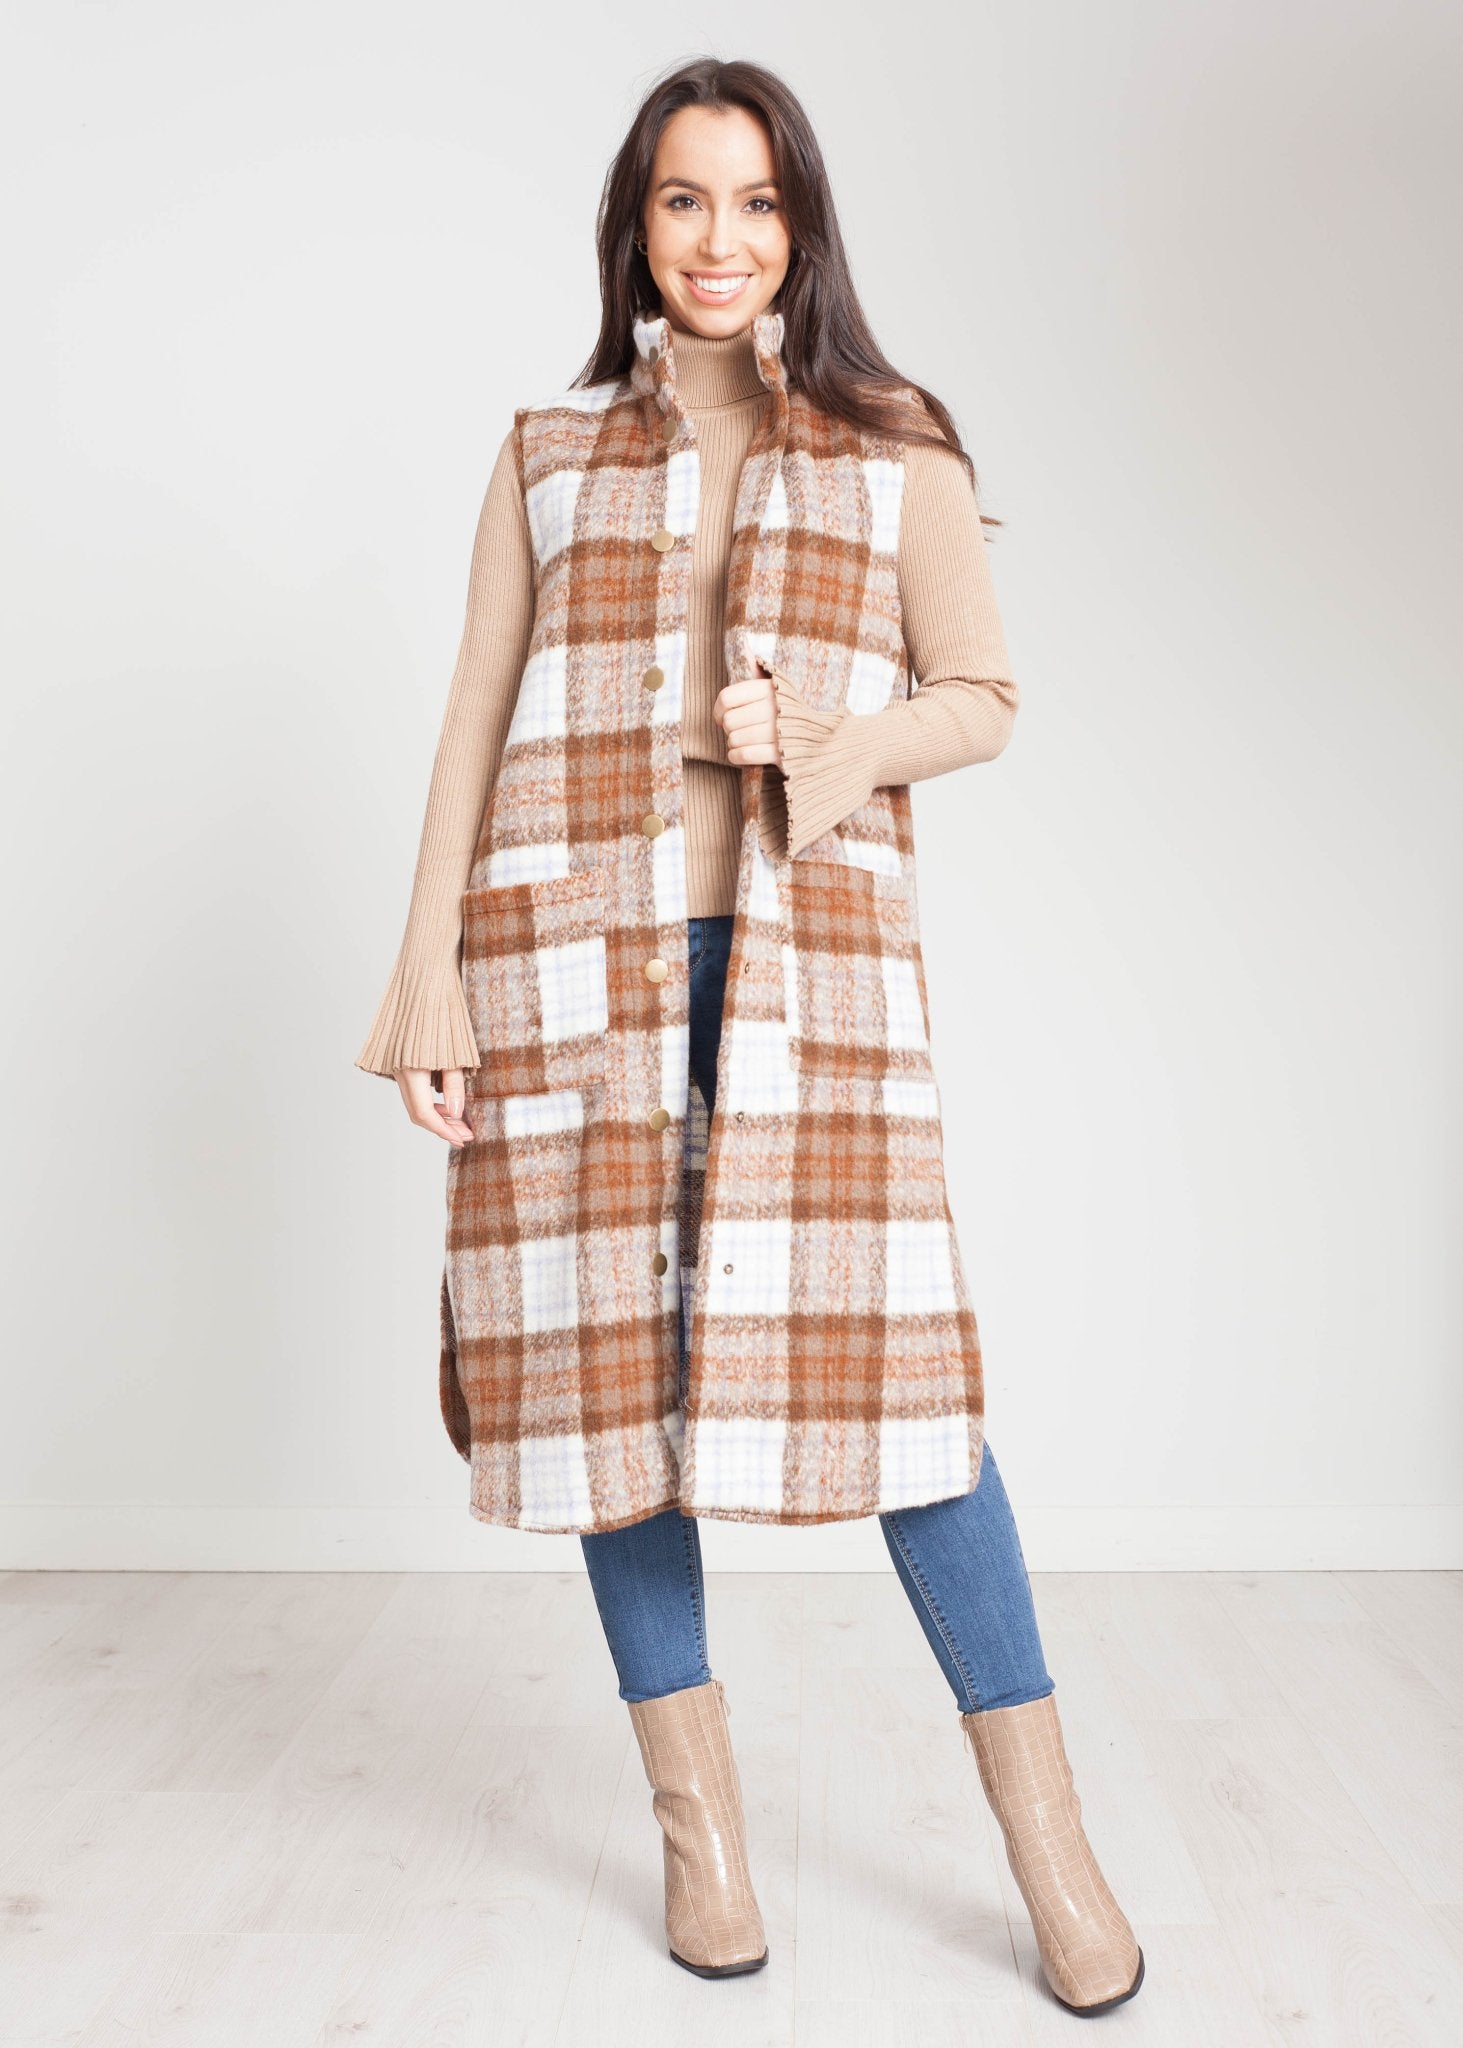 Lottie Waistcoat In Tan Check - The Walk in Wardrobe